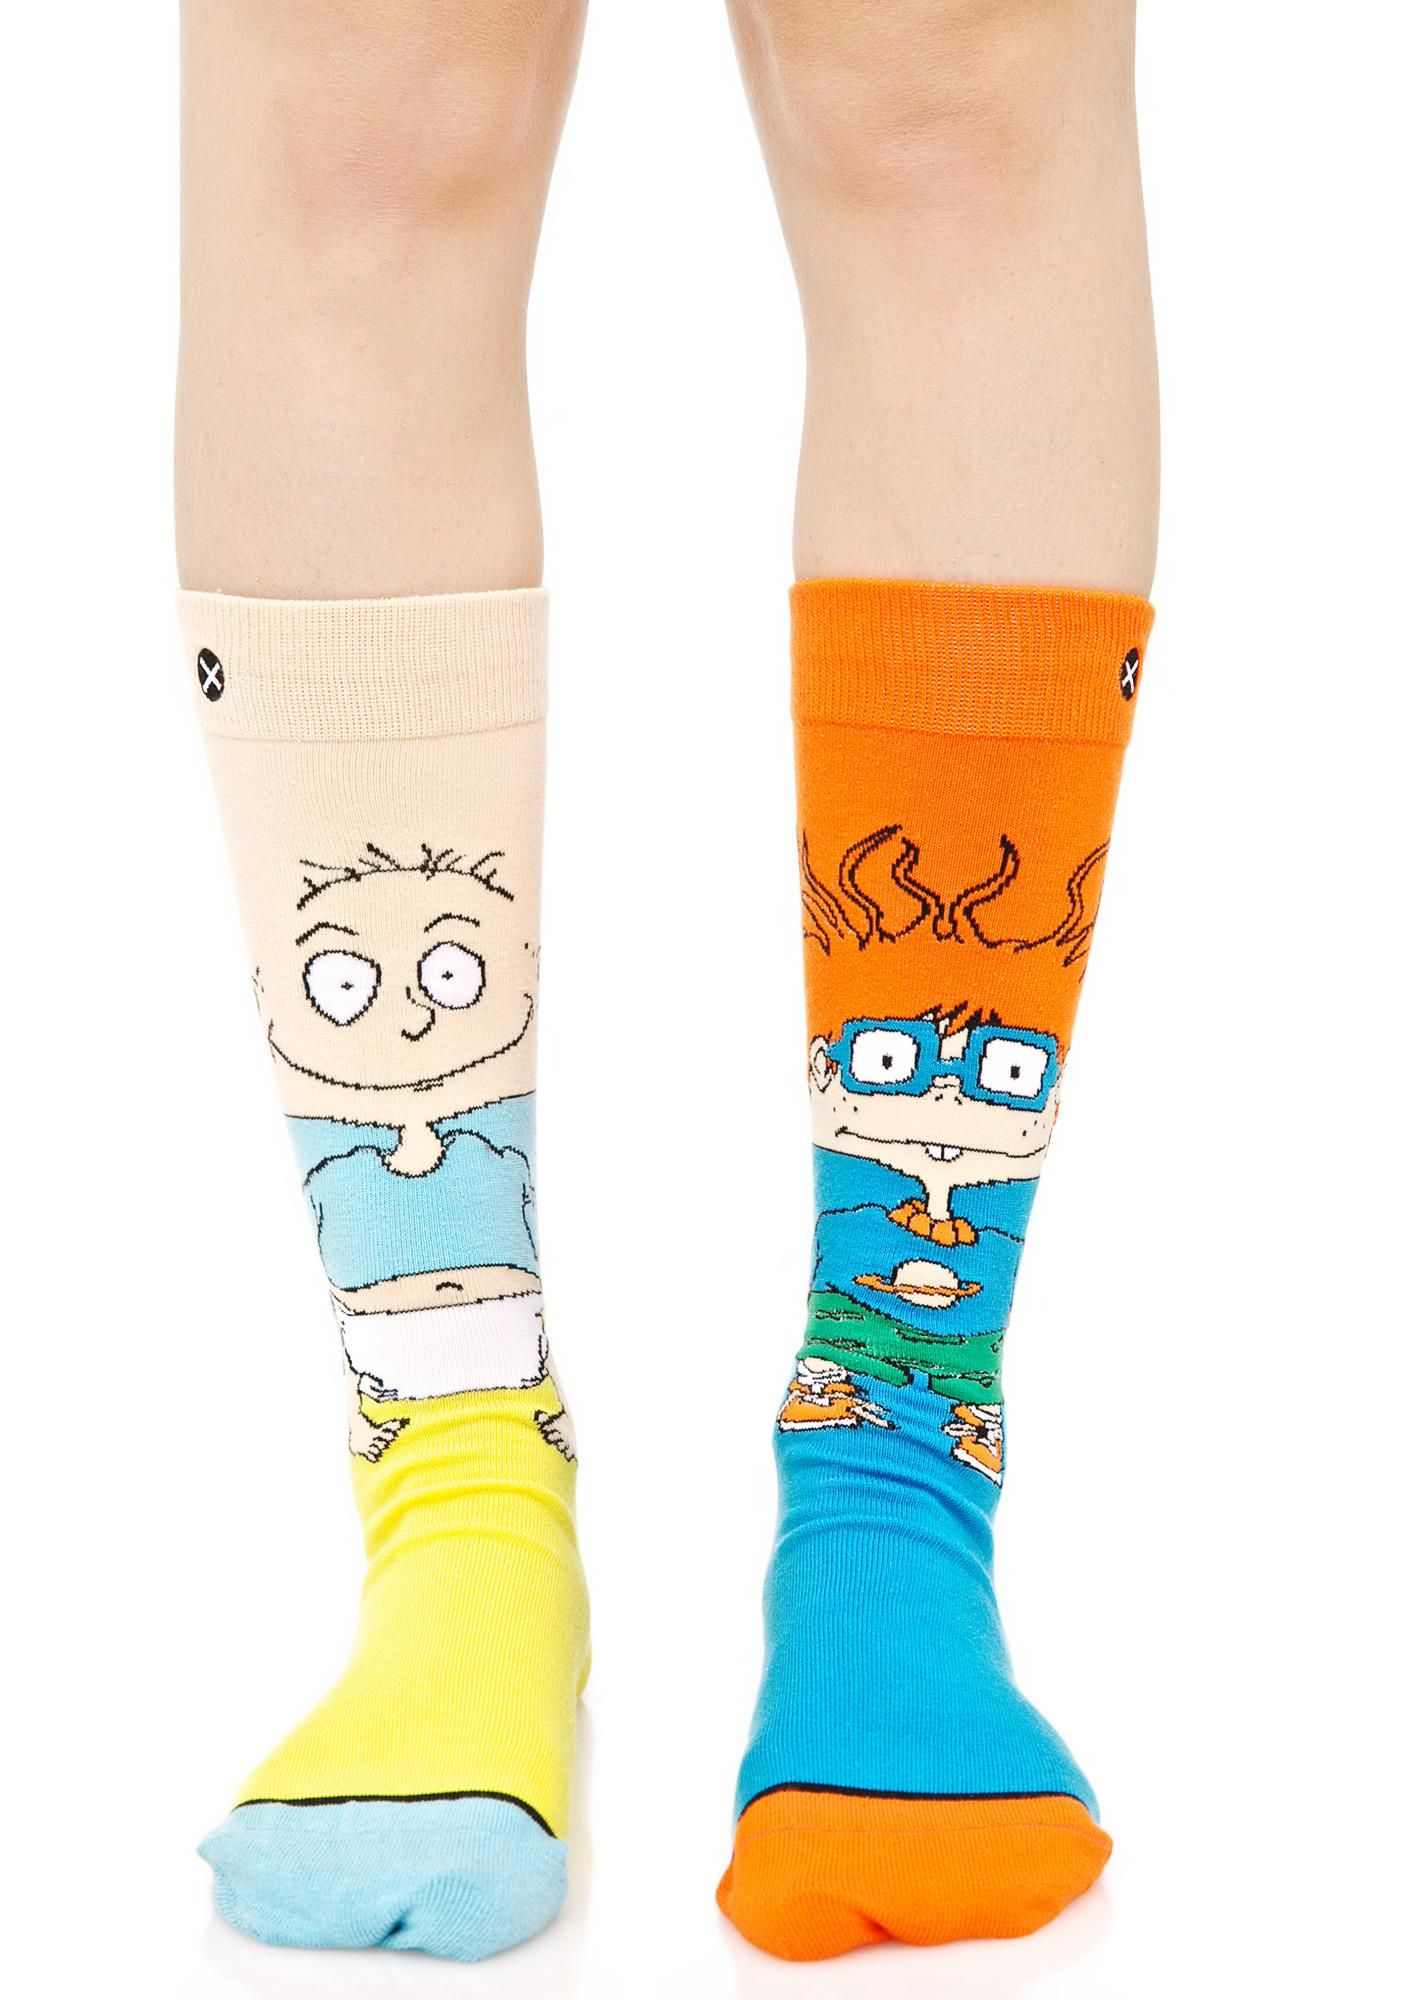 Tommy And Chuckie Socks | Pinterest | Quiero